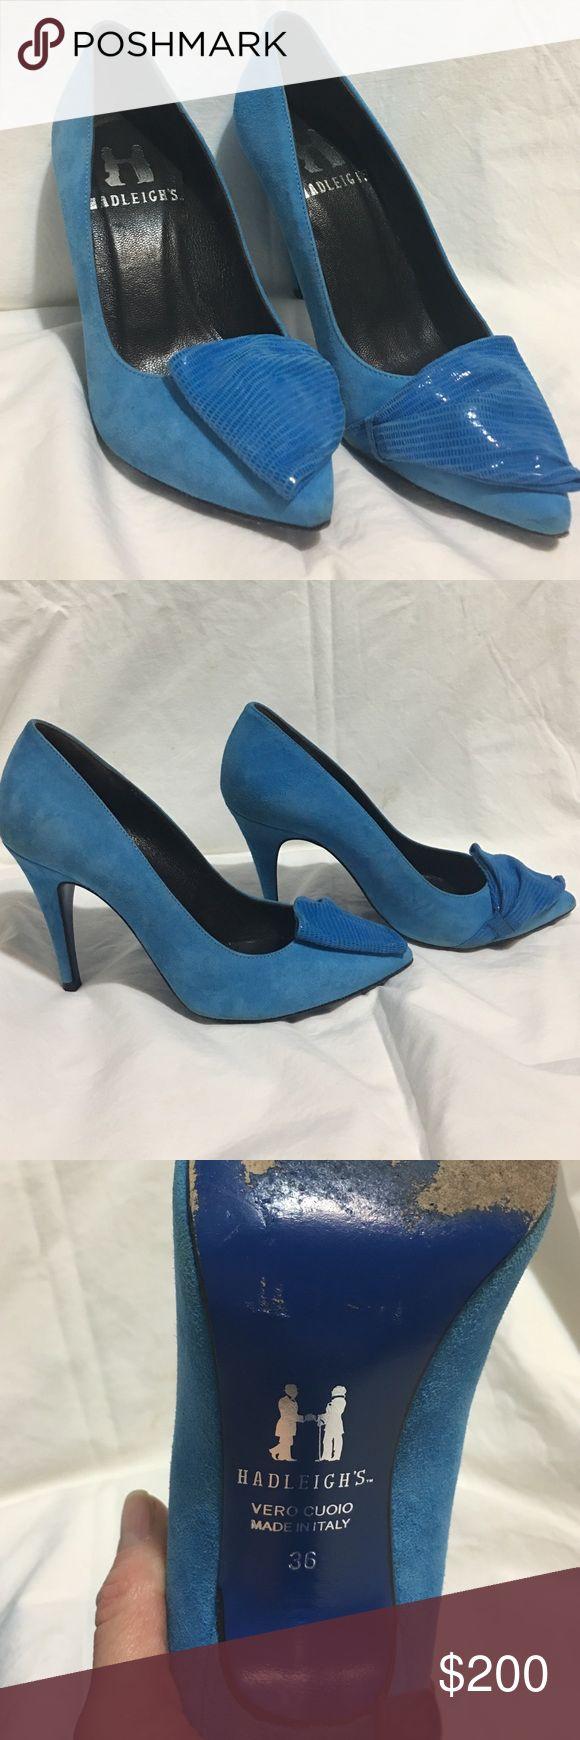 Hadleigh's pumps Hadleigh's Vero Cuoio blue suede pumps. Made in Italy. Leather insole. Size 36. Condition: Used but in good shape. Hadleigh's Shoes Heels